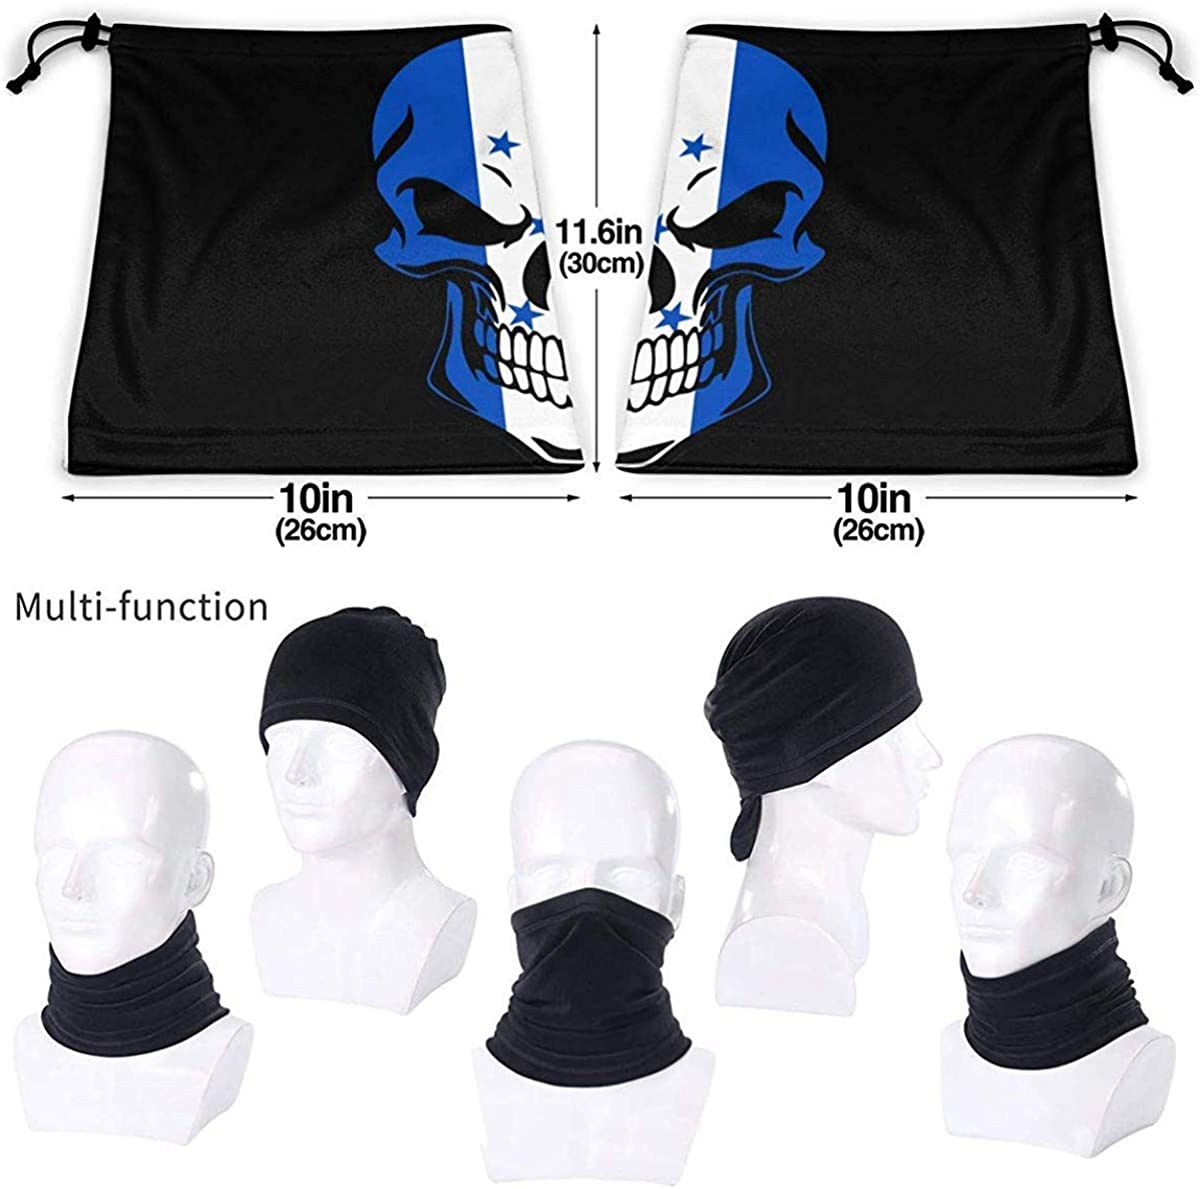 Honduras Flag Skull Microfiber Neck Warmer Balaclavas Soft Fleece Headwear Face Scarf Mask For Winter